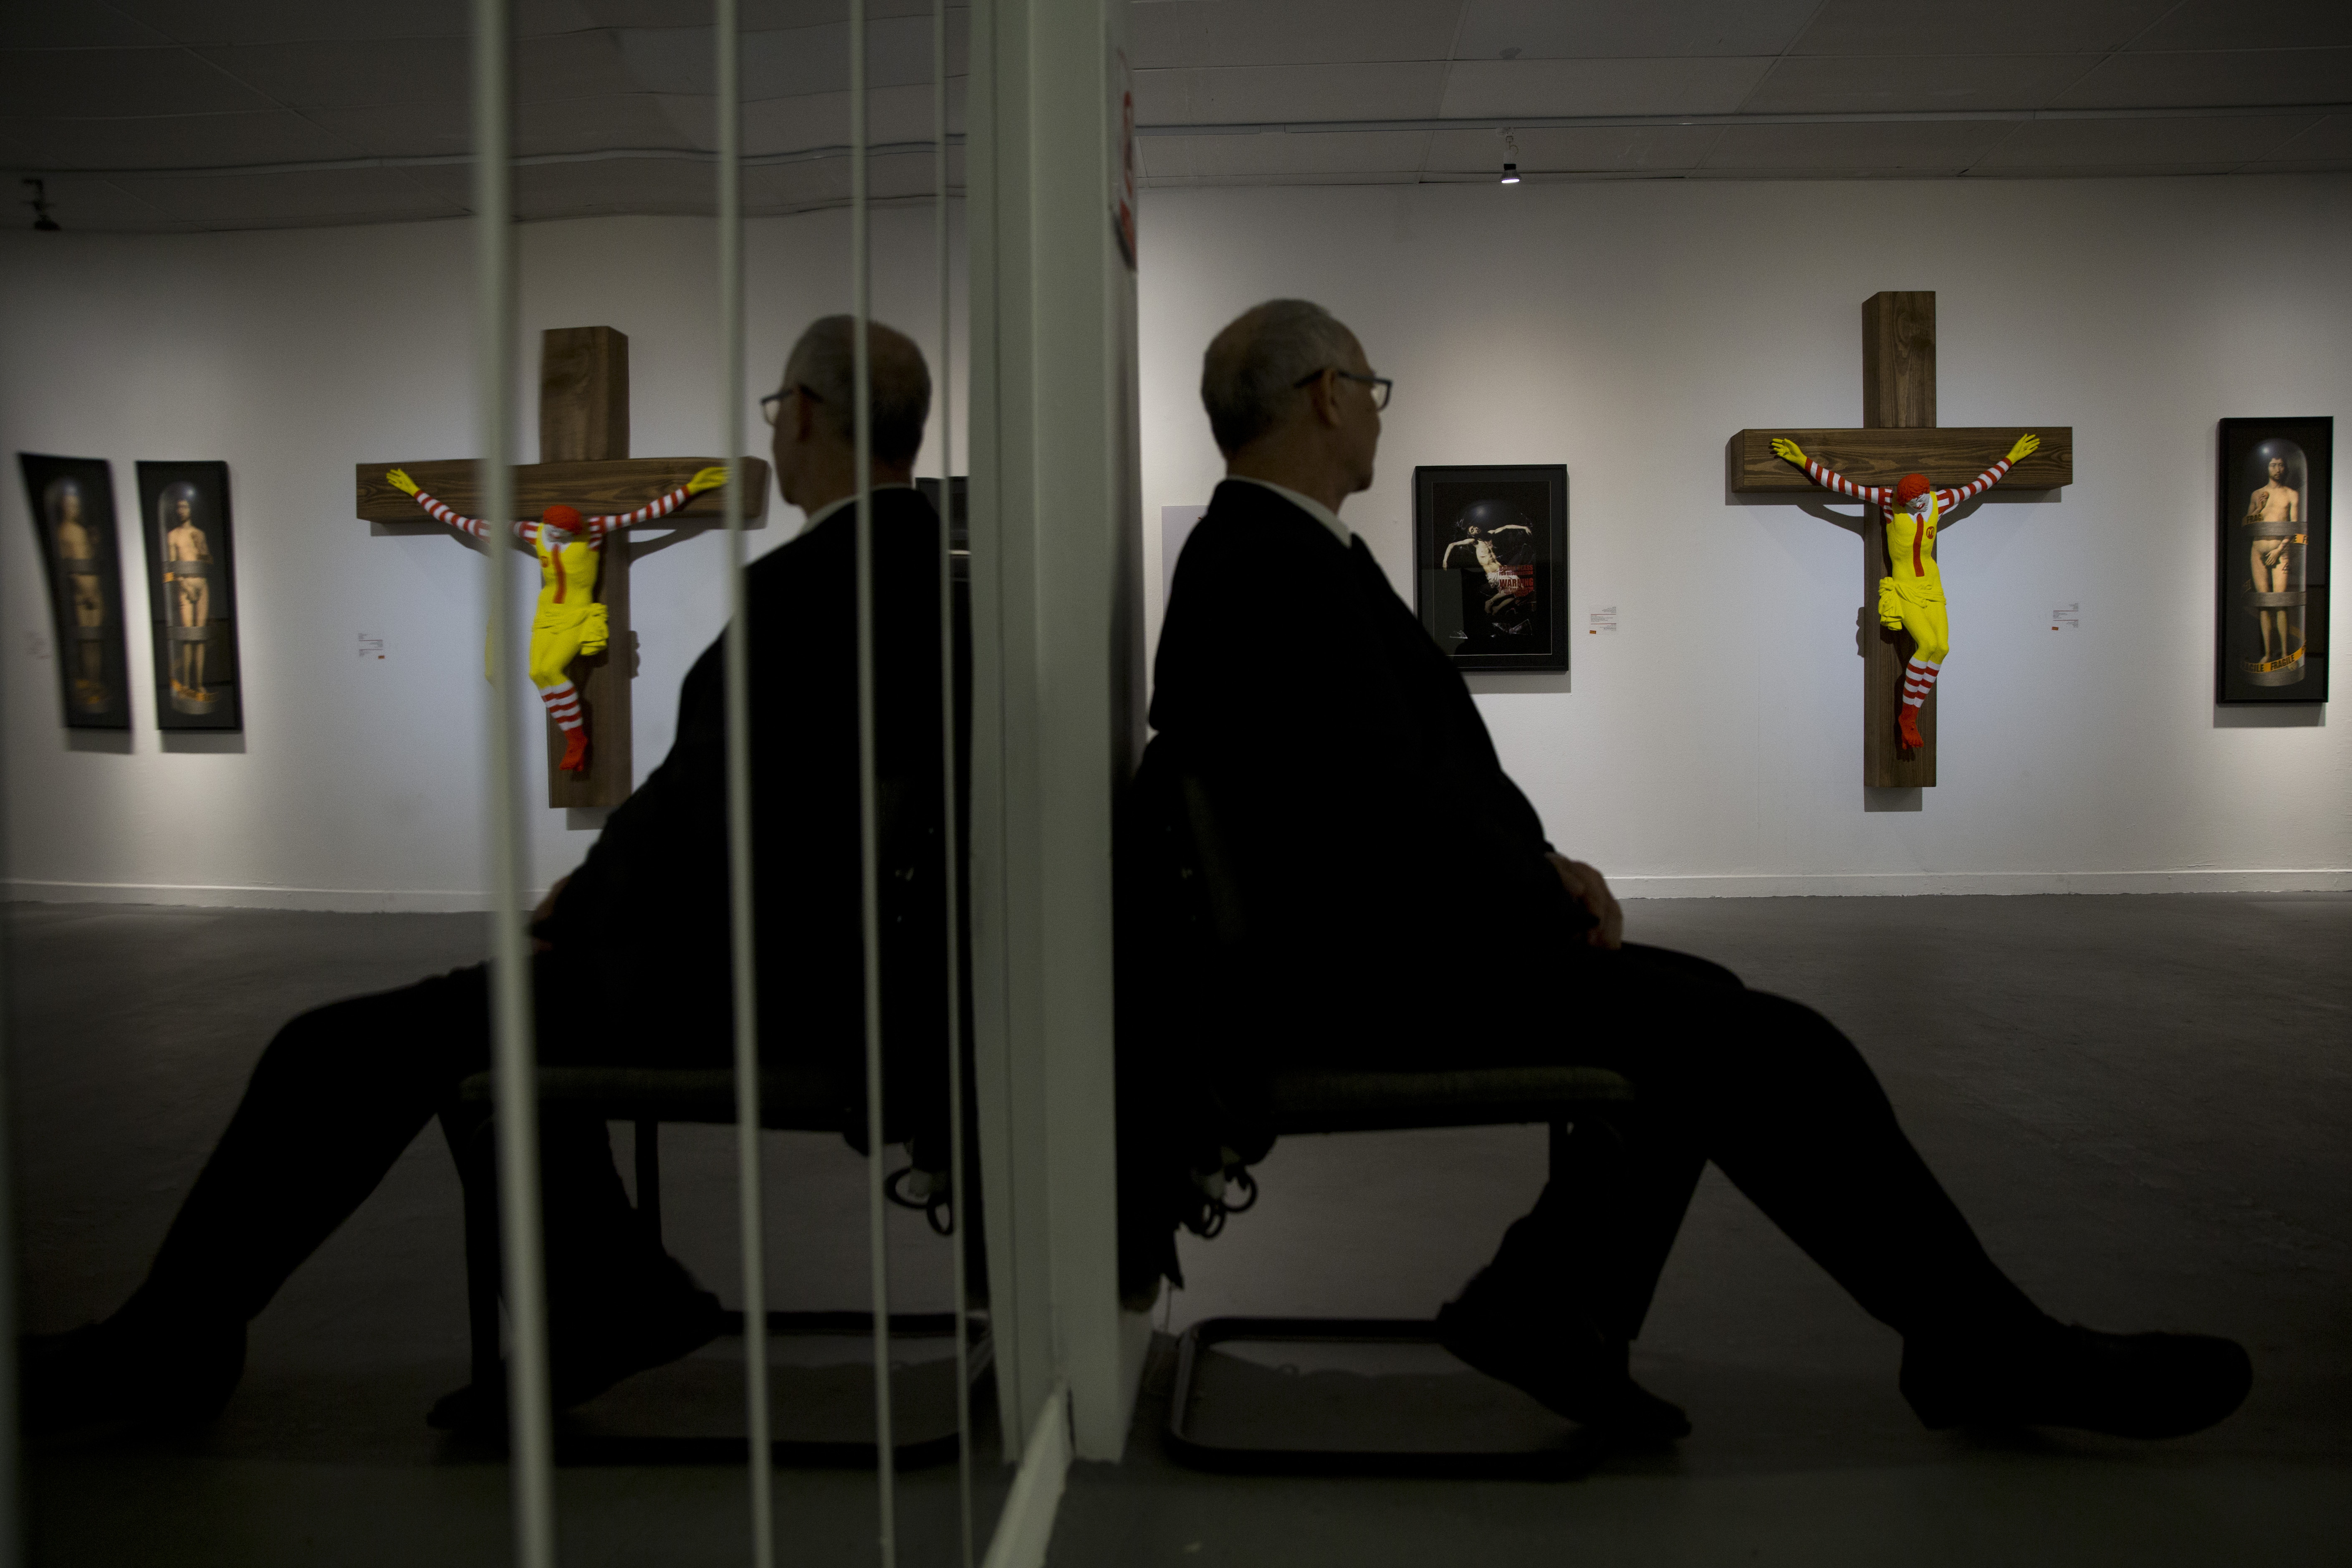 An artwork called McJesus, which was sculpted by Finnish artist Jani Leinonen and depicts a crucified Ronald McDonald, is seen on display as part of the Haifa museum's Sacred Goods exhibit in Haifa, Israel